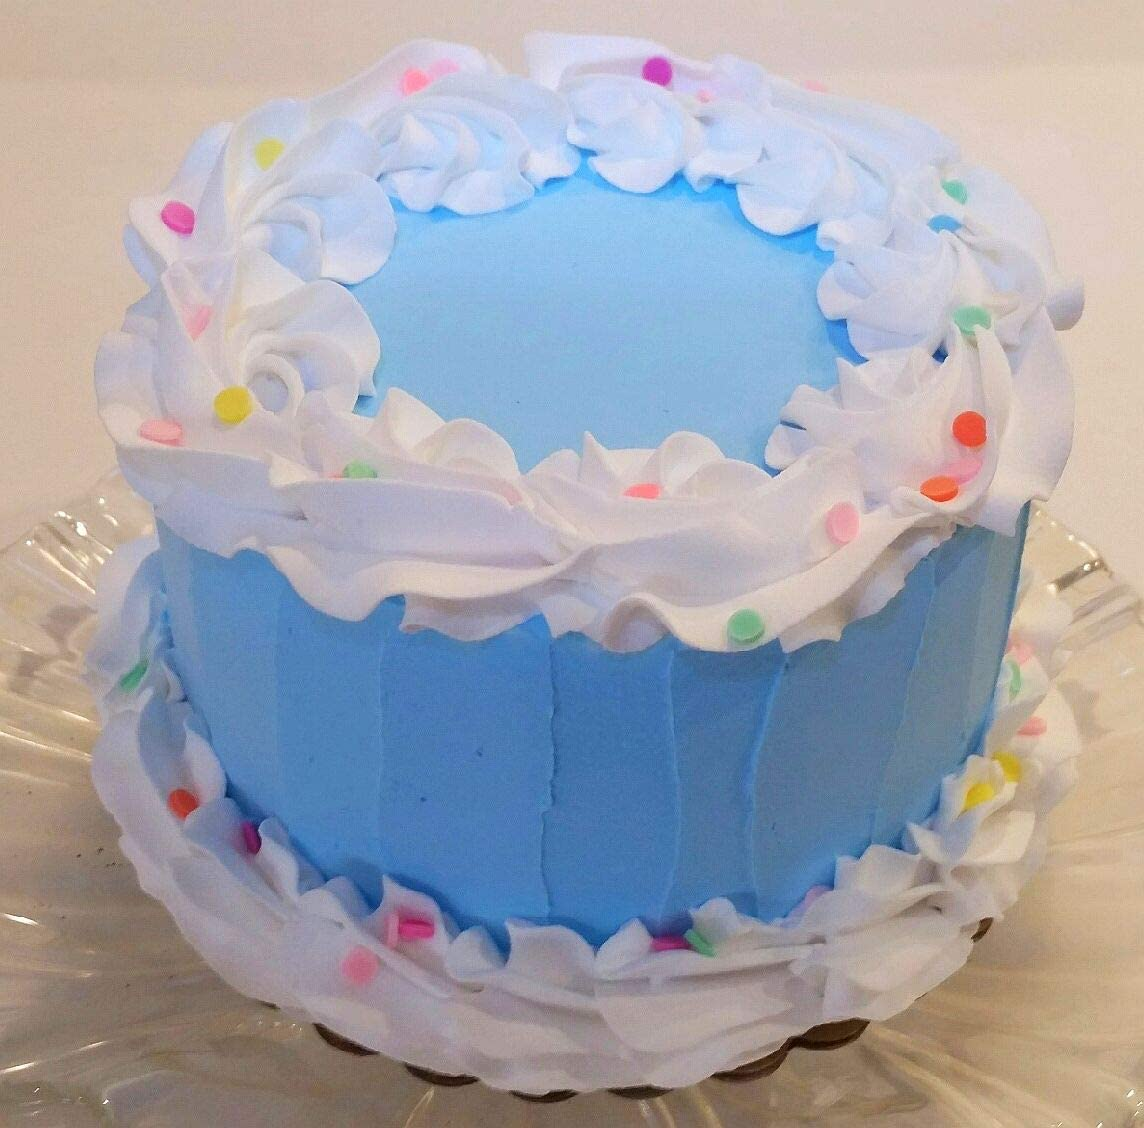 Sensational Amazon Com Dezicakes Fake Cake 6 Blue Birthday Cake Faux Cake Funny Birthday Cards Online Sheoxdamsfinfo